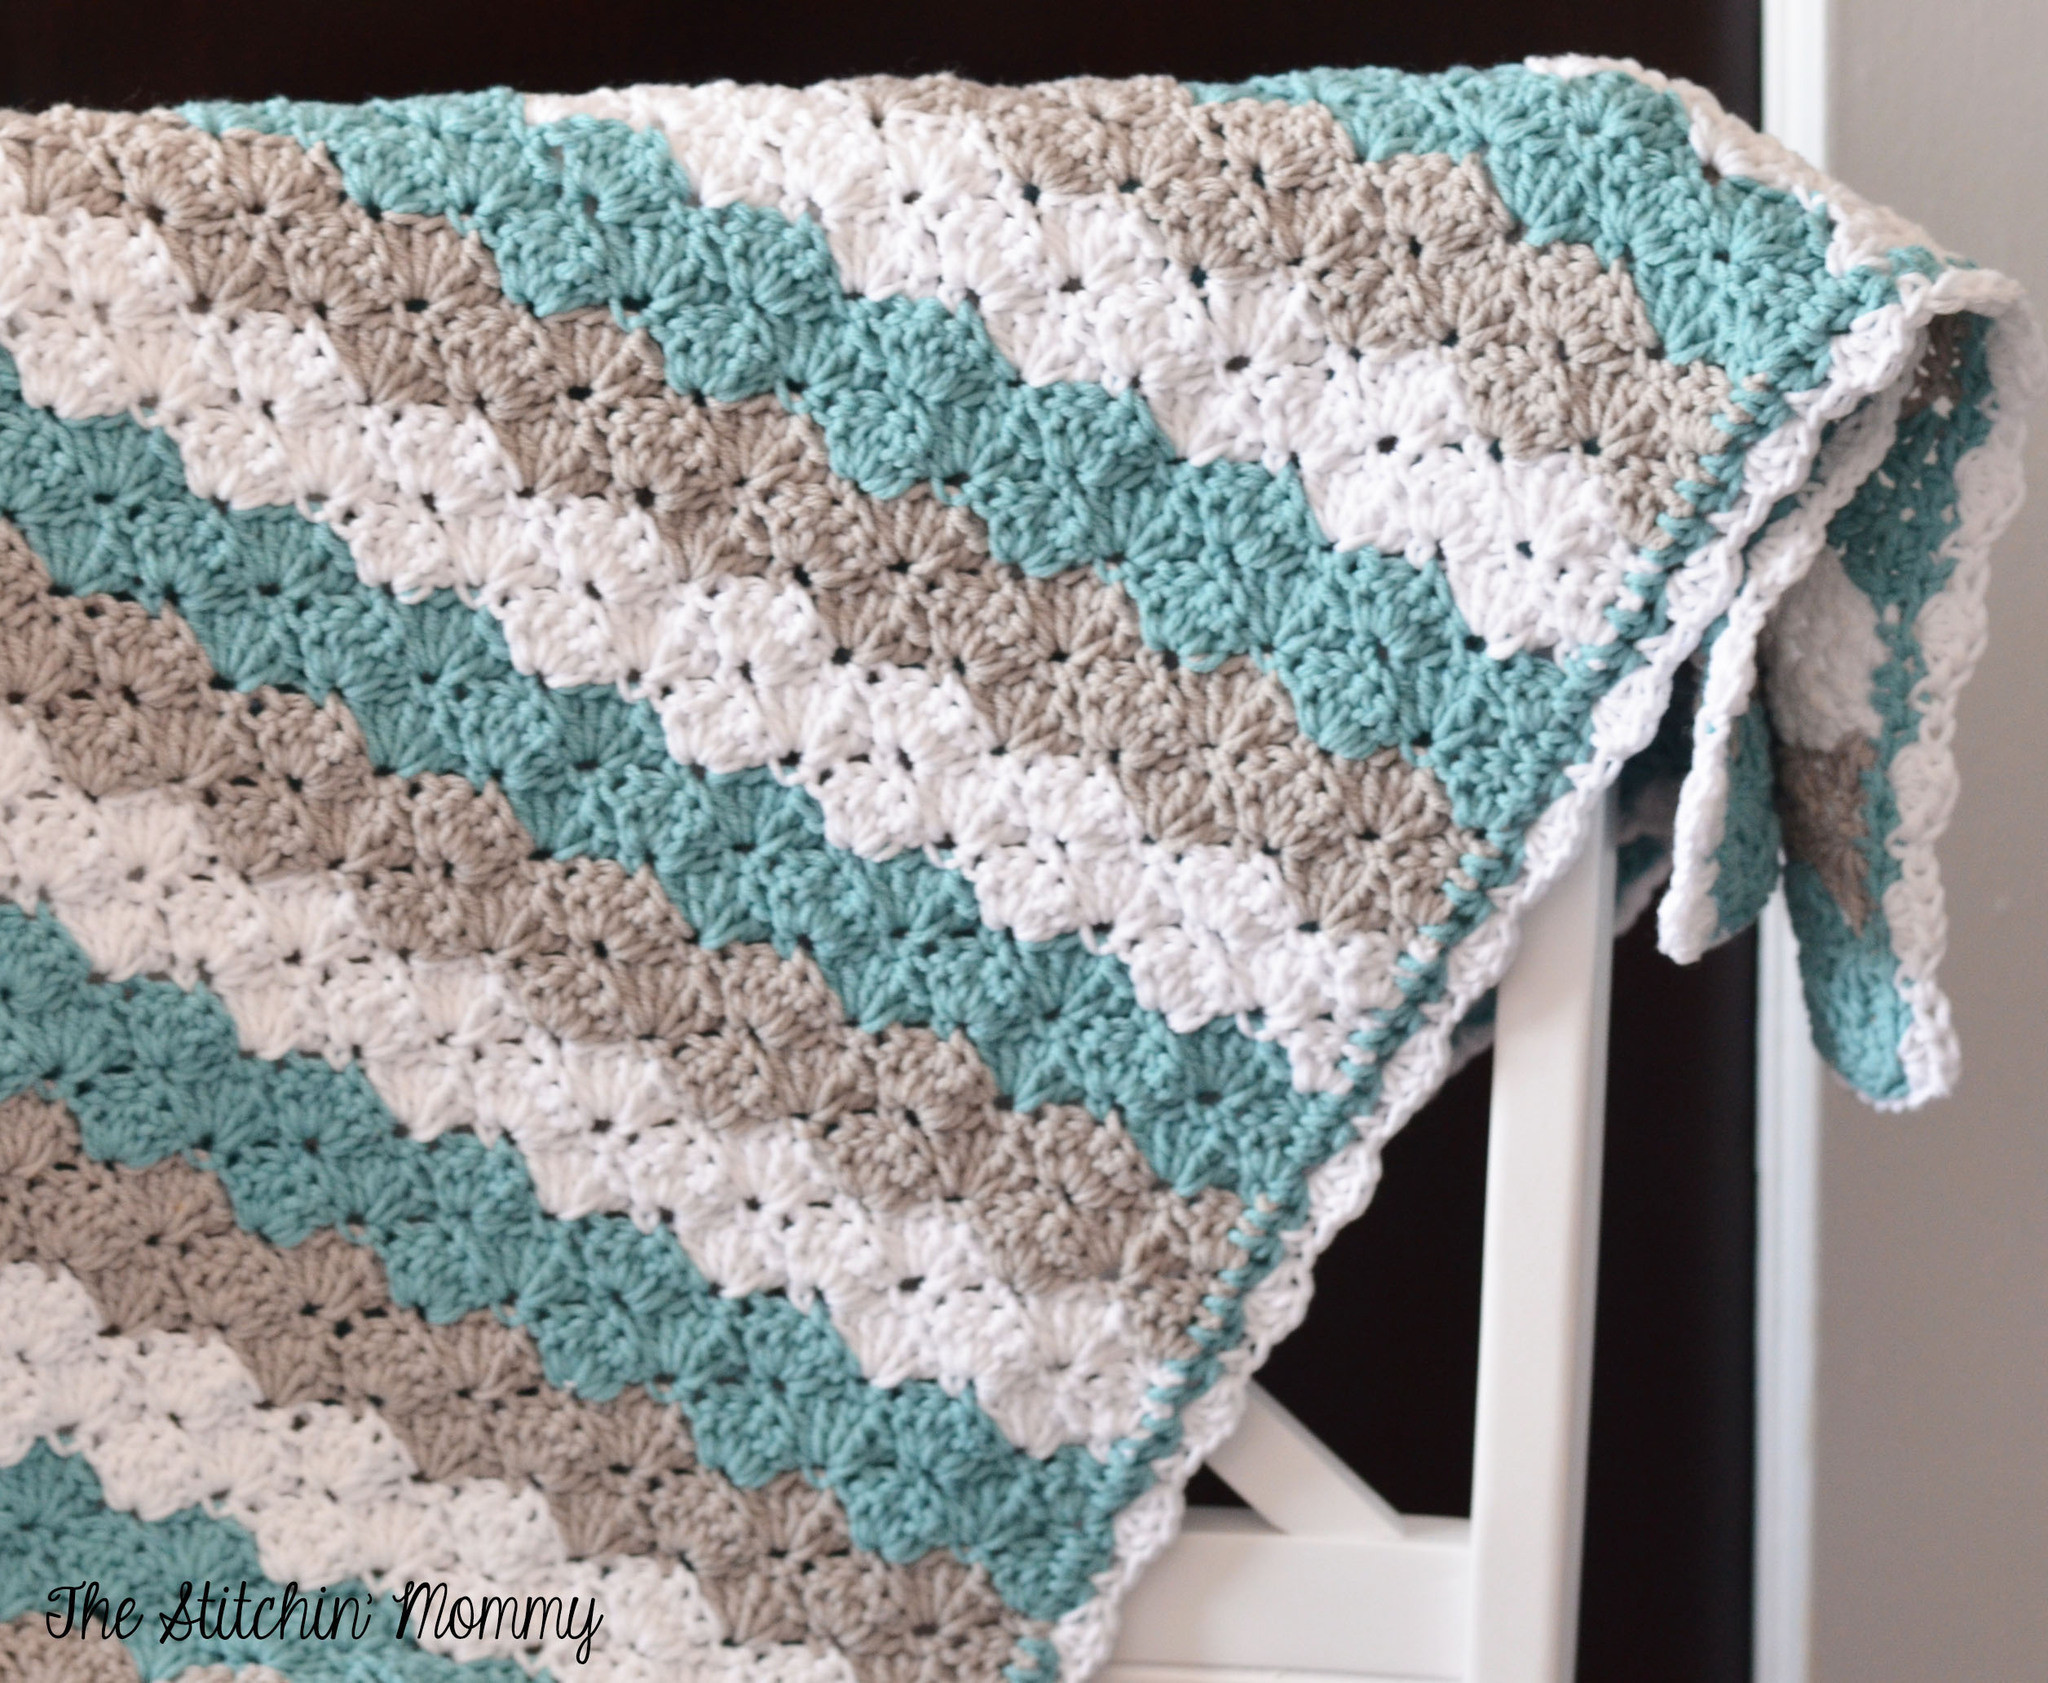 Crochet Shell Stitch Baby Blanket · How To Make A Baby